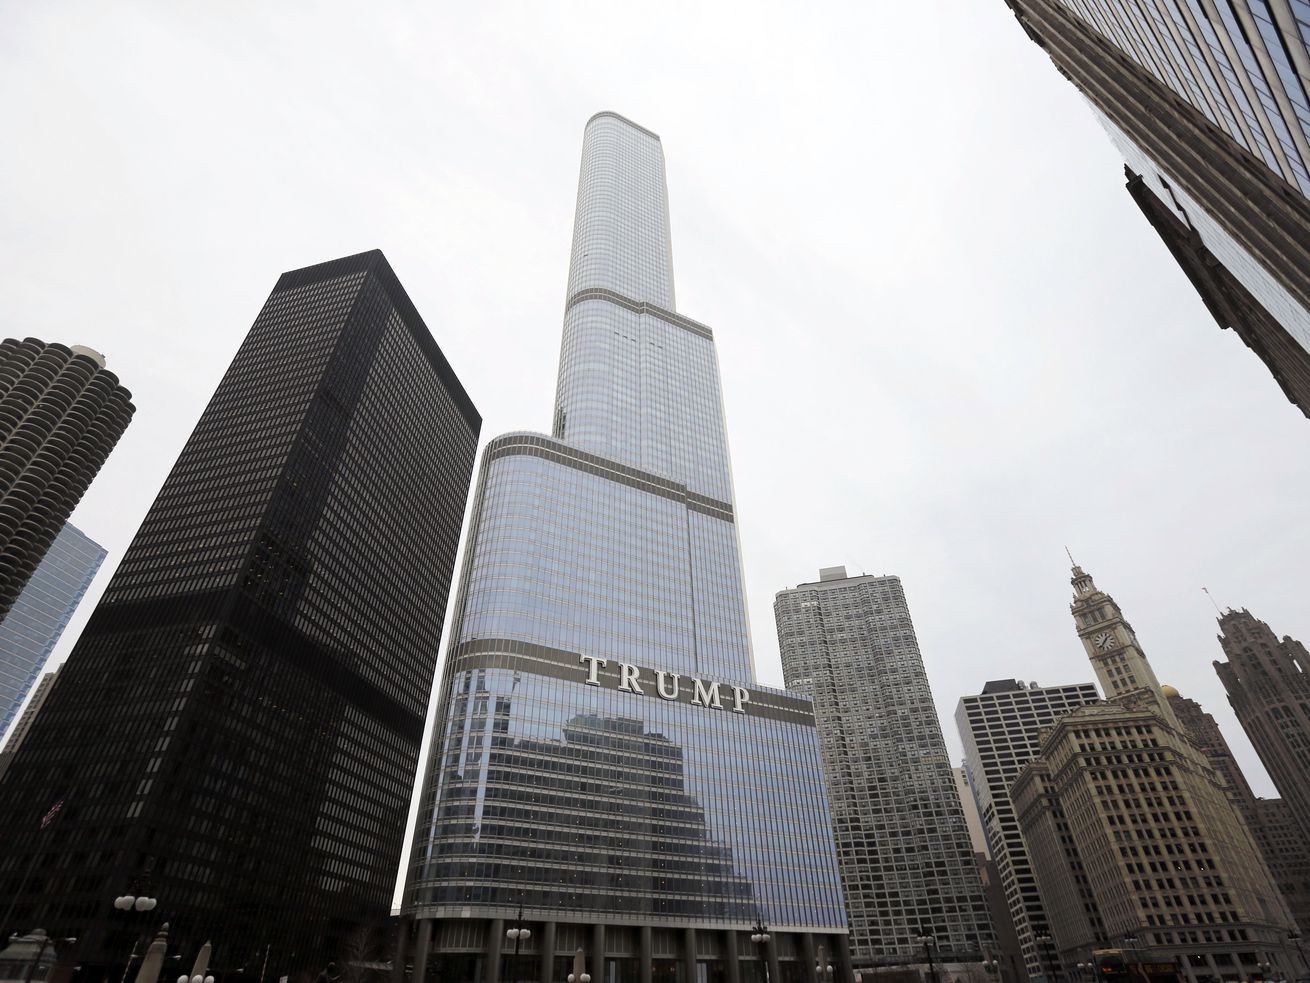 This Thursday, March 10, 2016 file photo shows the Trump International Hotel and Tower in Chicago. During the four years of Donald Trump's presidency, prices for condos in the building have dropped, down 34%, according to Gail Lissner, a managing director of consultancy Integra Realty Resources. That compares to a 6% drop in the same period for 65 other condo buildings downtown.